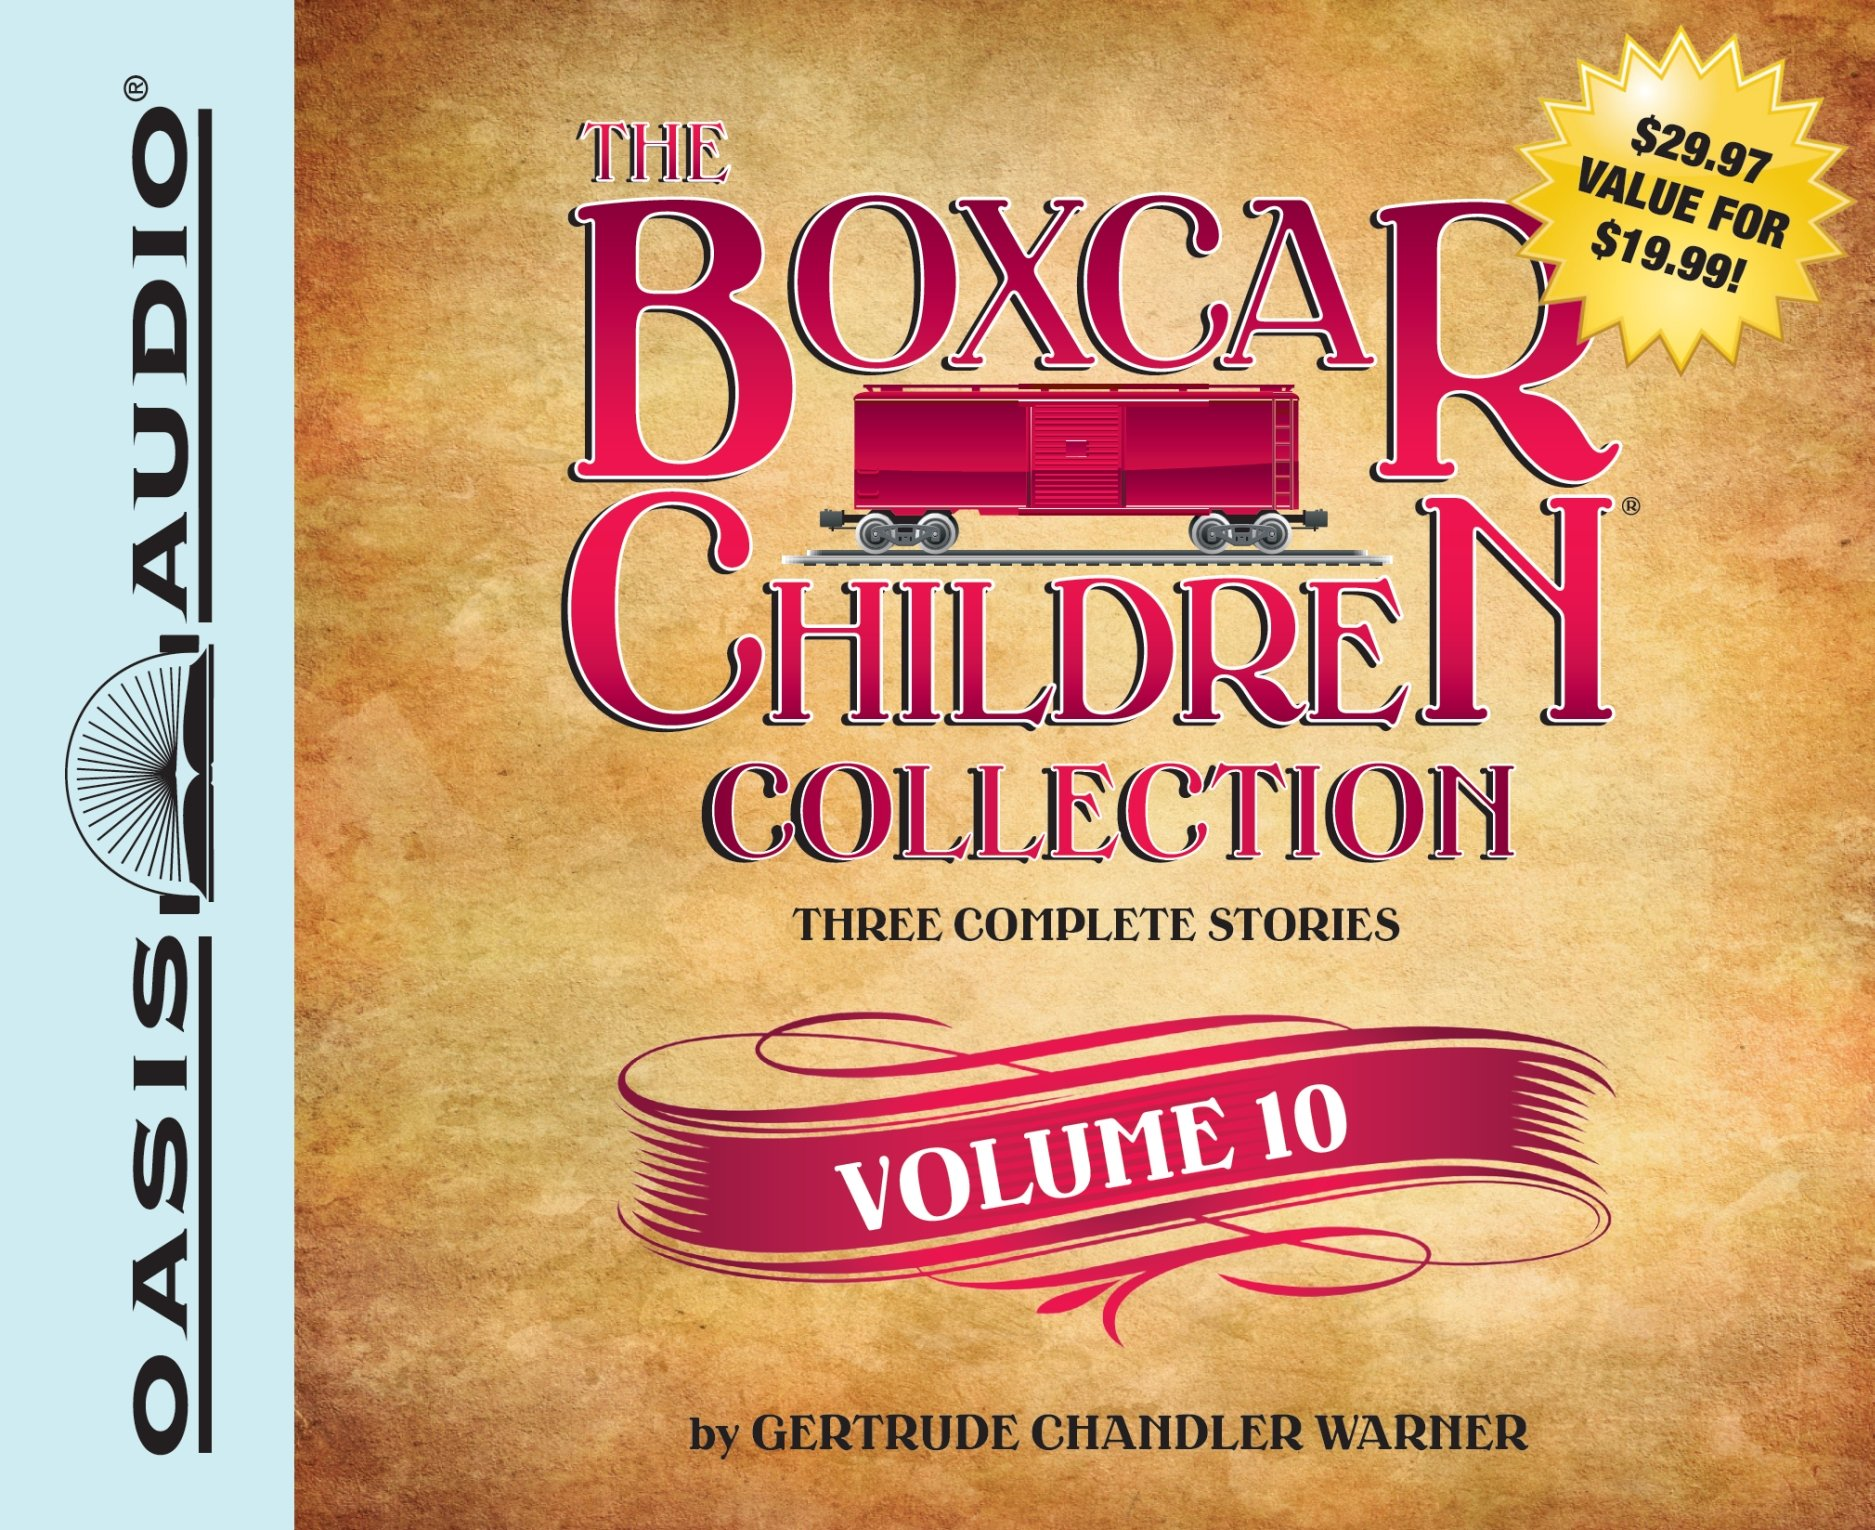 The Boxcar Children Collection Volume 10: The Mystery Girl, The Mystery Cruise, The Disappearing Friend Mystery (Boxcar Children Mysteries)